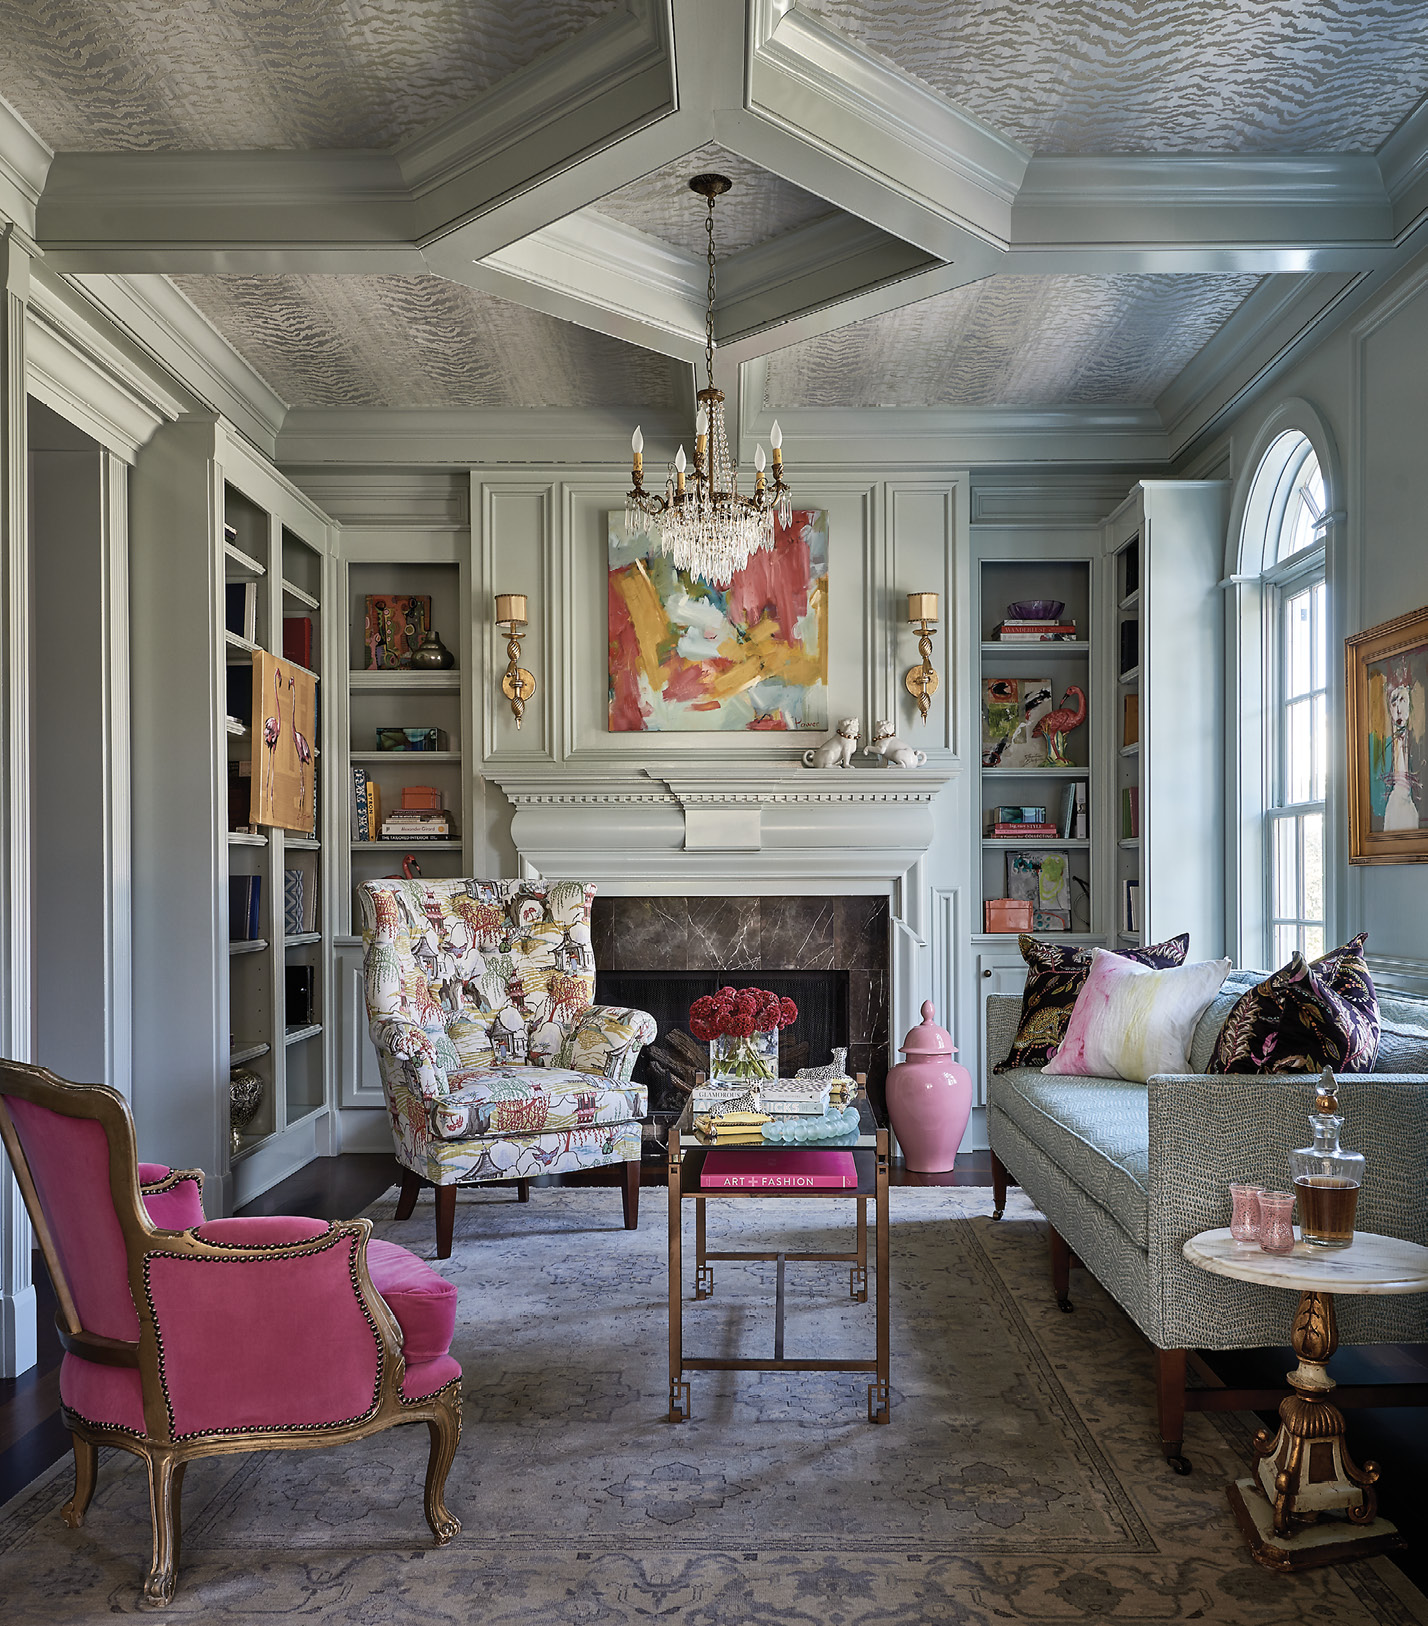 """In the library, which was previously paneled in walnut, a pale mint paint (Farrow & Ball """"Cromarty No. 285""""), Thibaut """"Tiger Flock"""" wallpaper, pops of pink, and a crystal chandelier achieved the glamorous, New Orleans-inspired aesthetic the homeowner desired."""